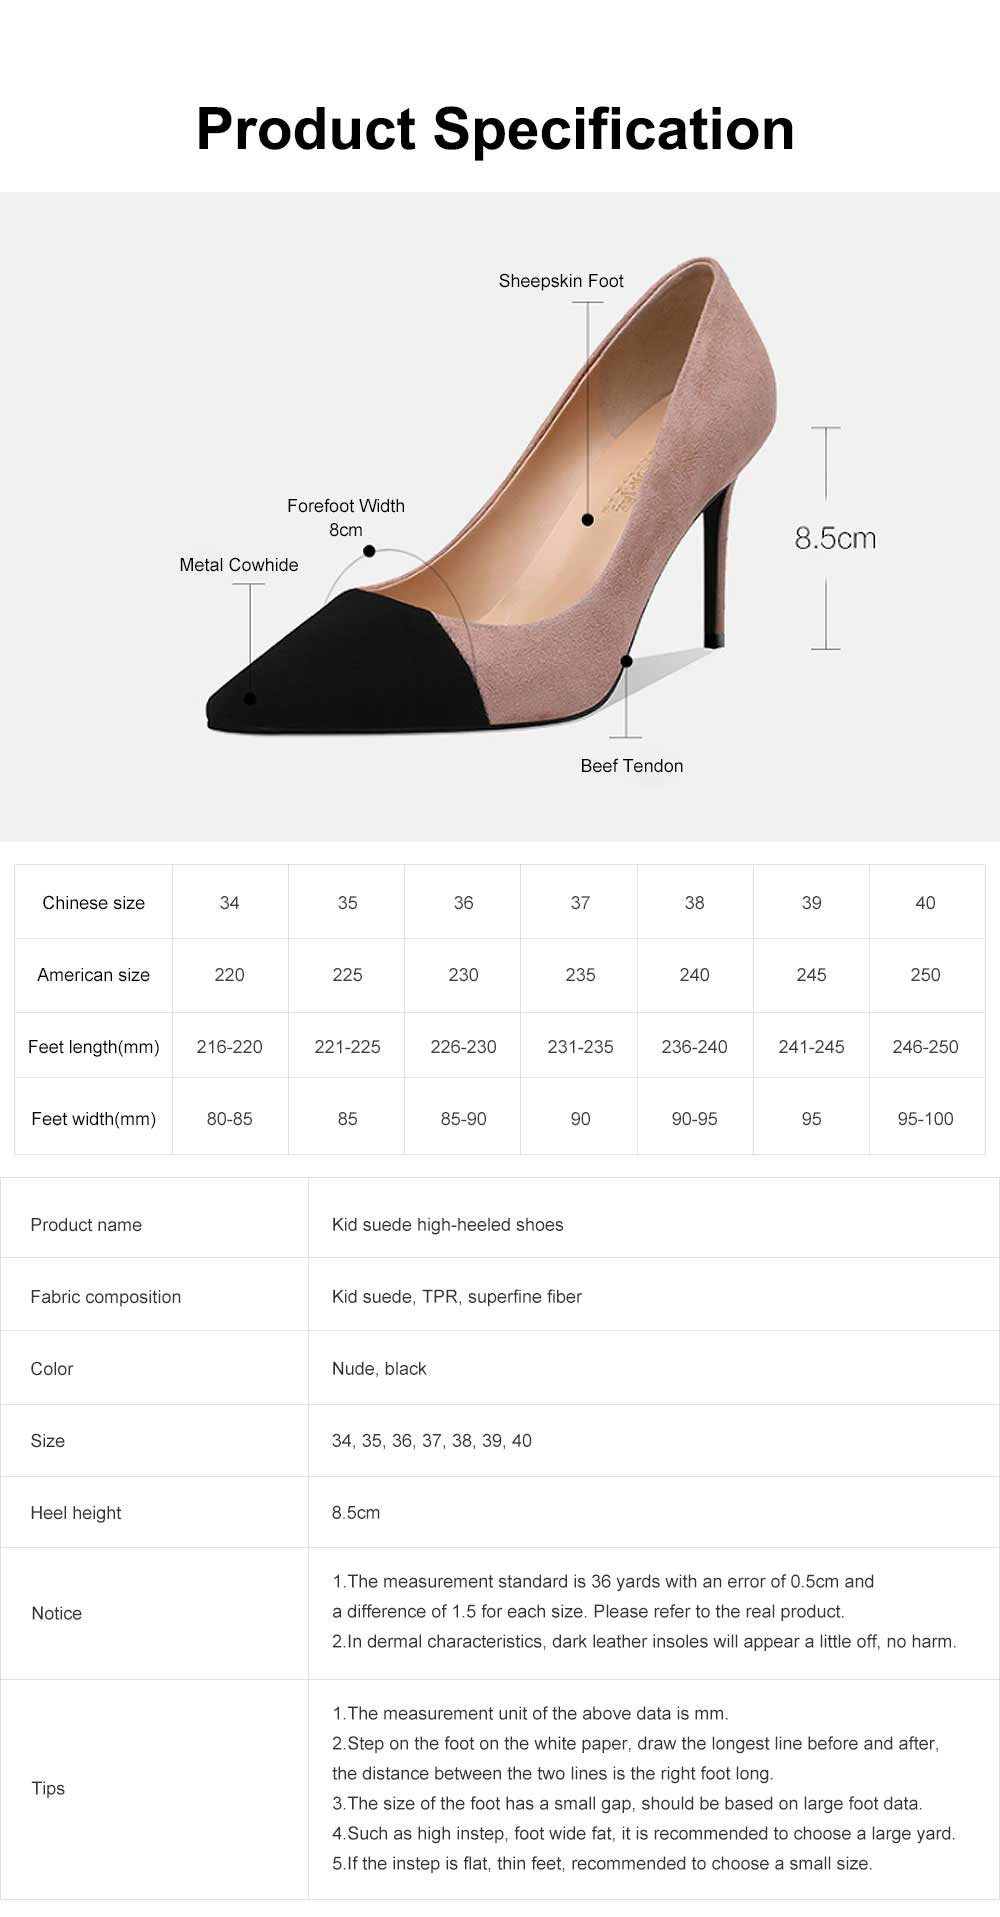 Kid Suede High-heeled Shoes for Women, Nude Black Concise Style High Heels, Pointed Design Gum-rubber Outsole Sandals 6